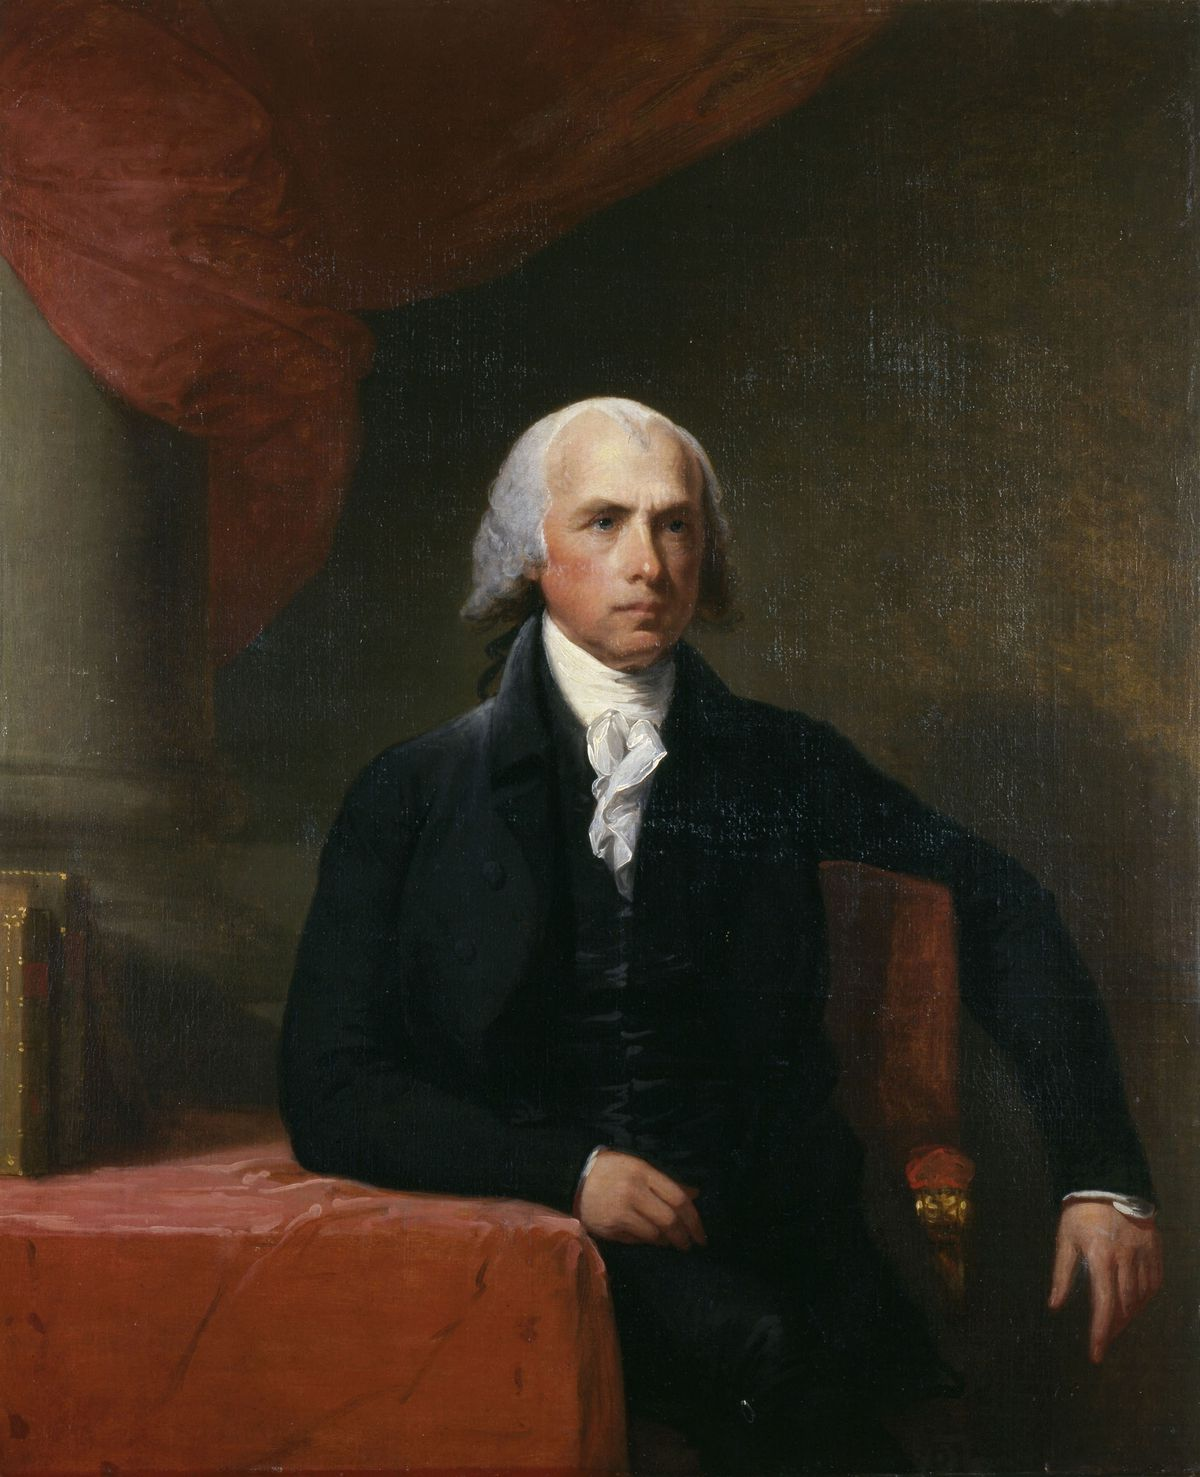 portrait of james madison by gilbert stuart who made additional copies after completion of